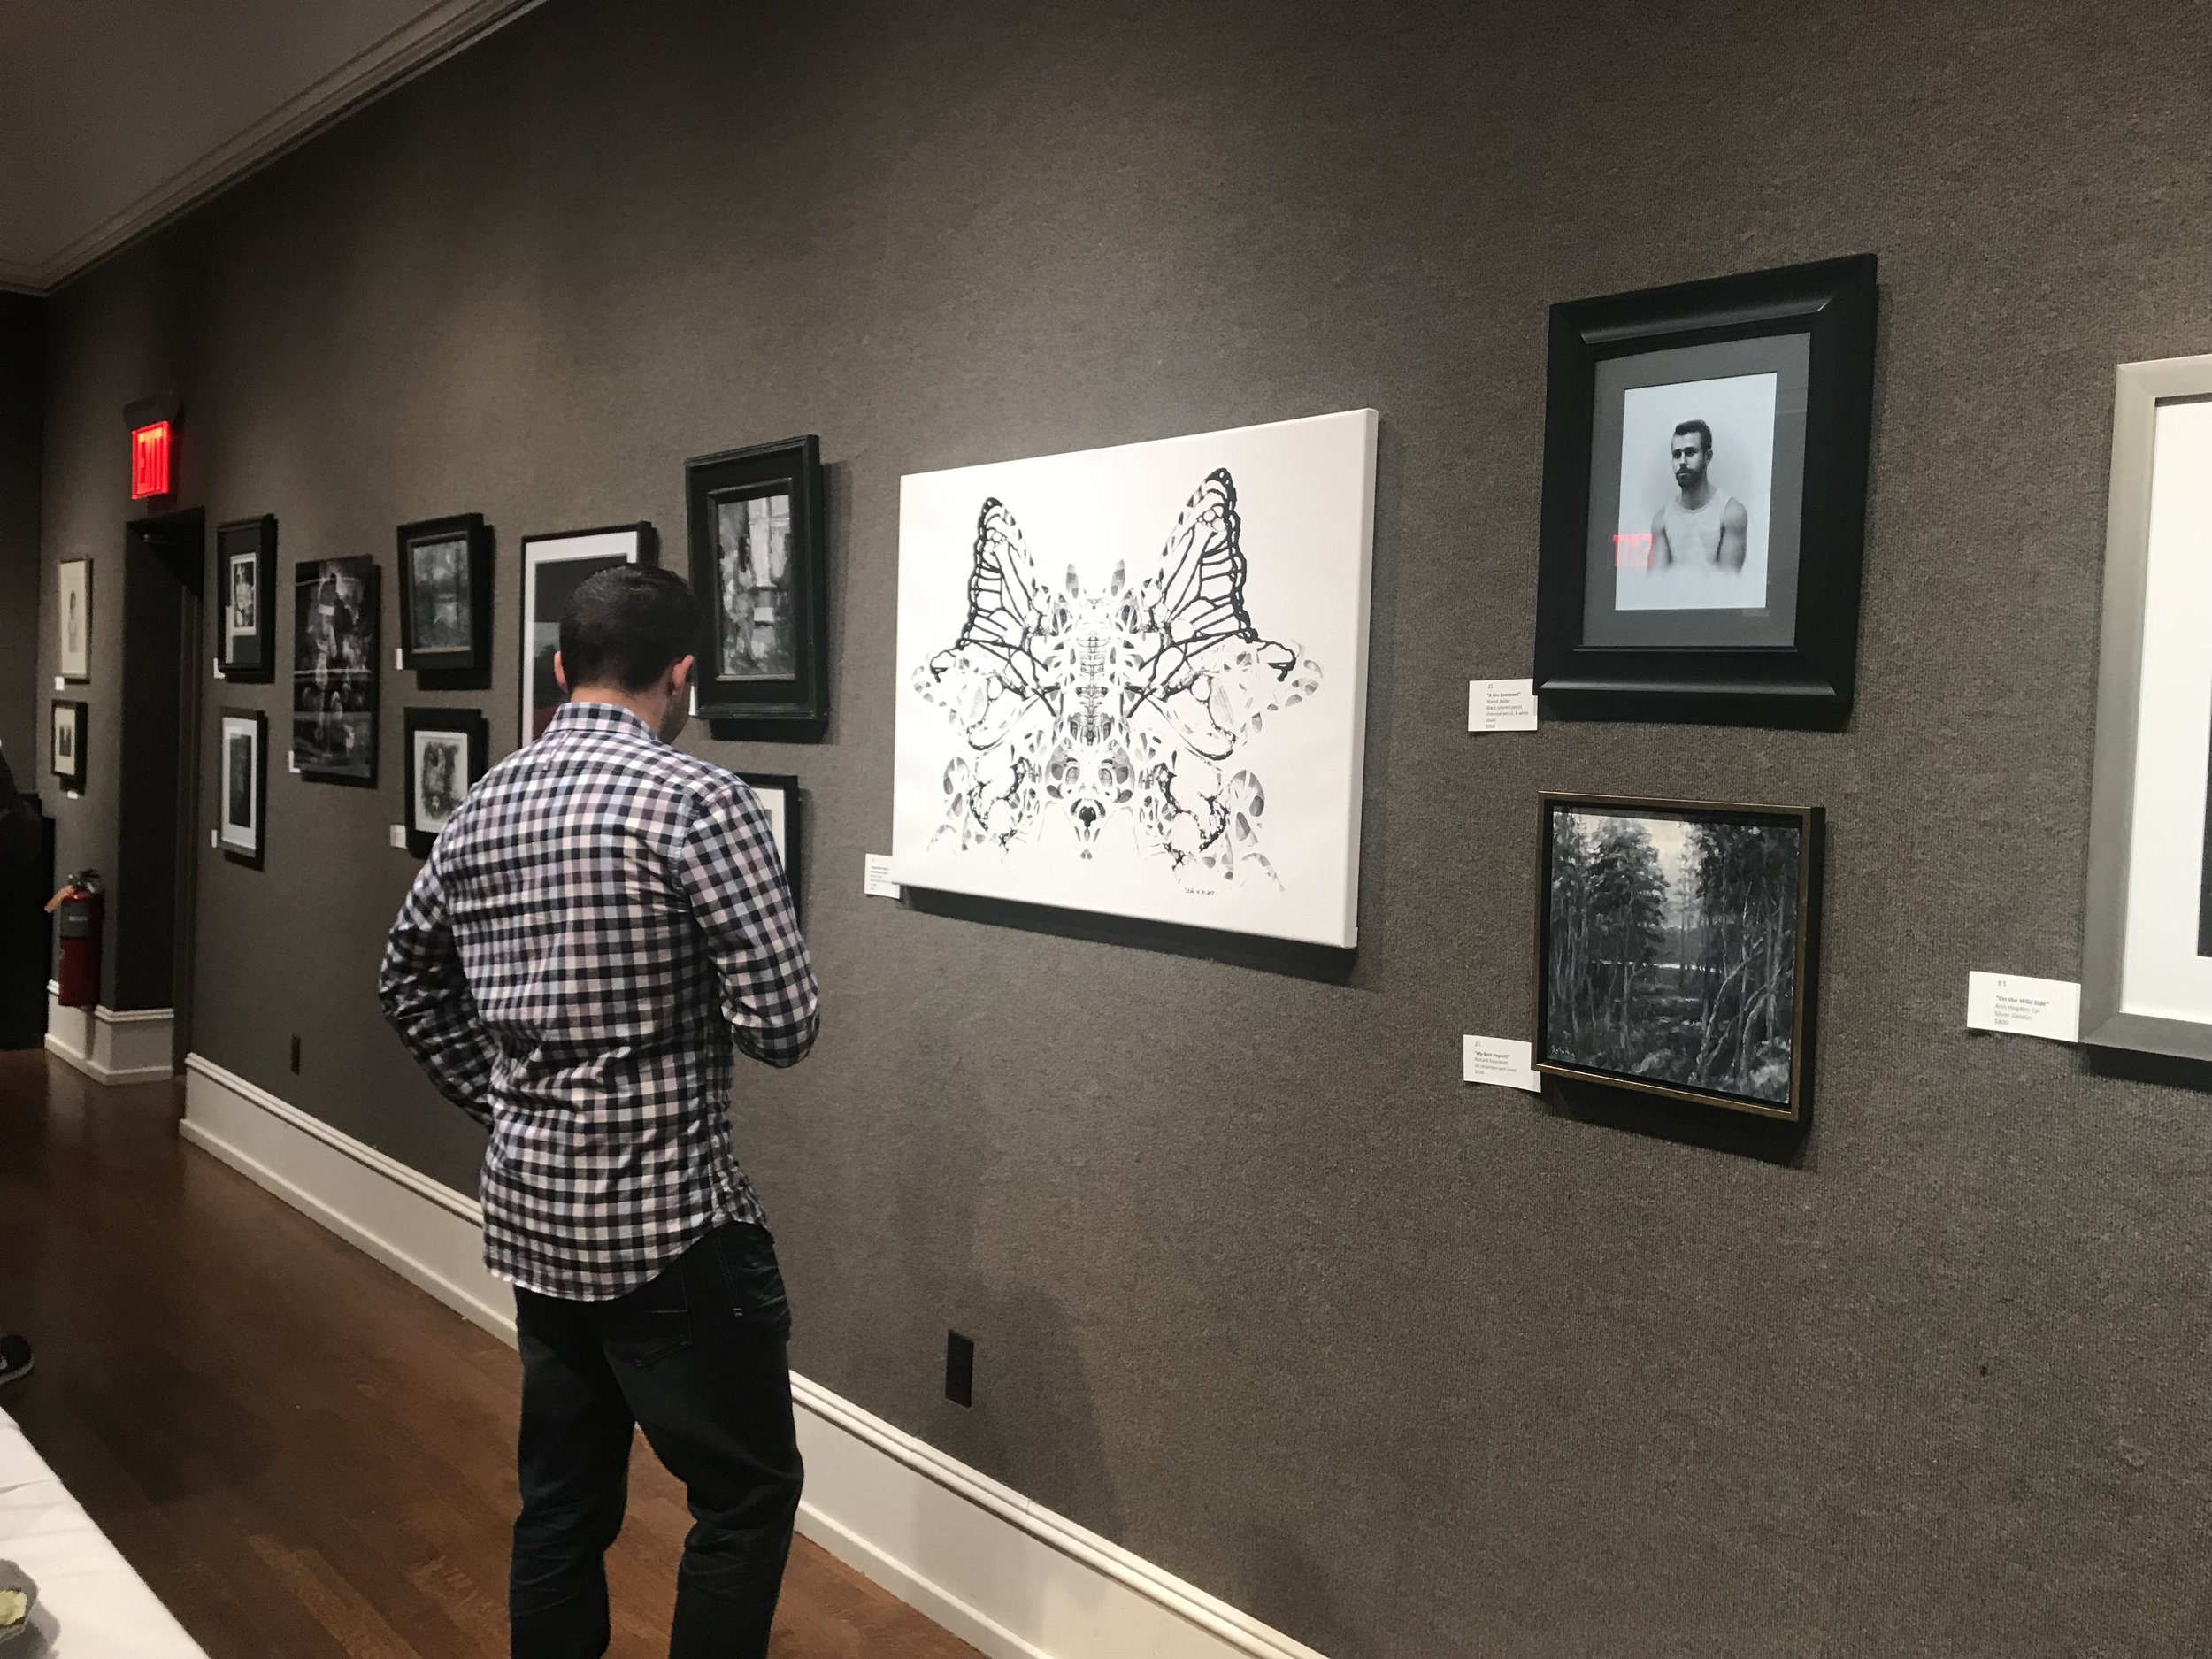 Second dude checking out my artwork